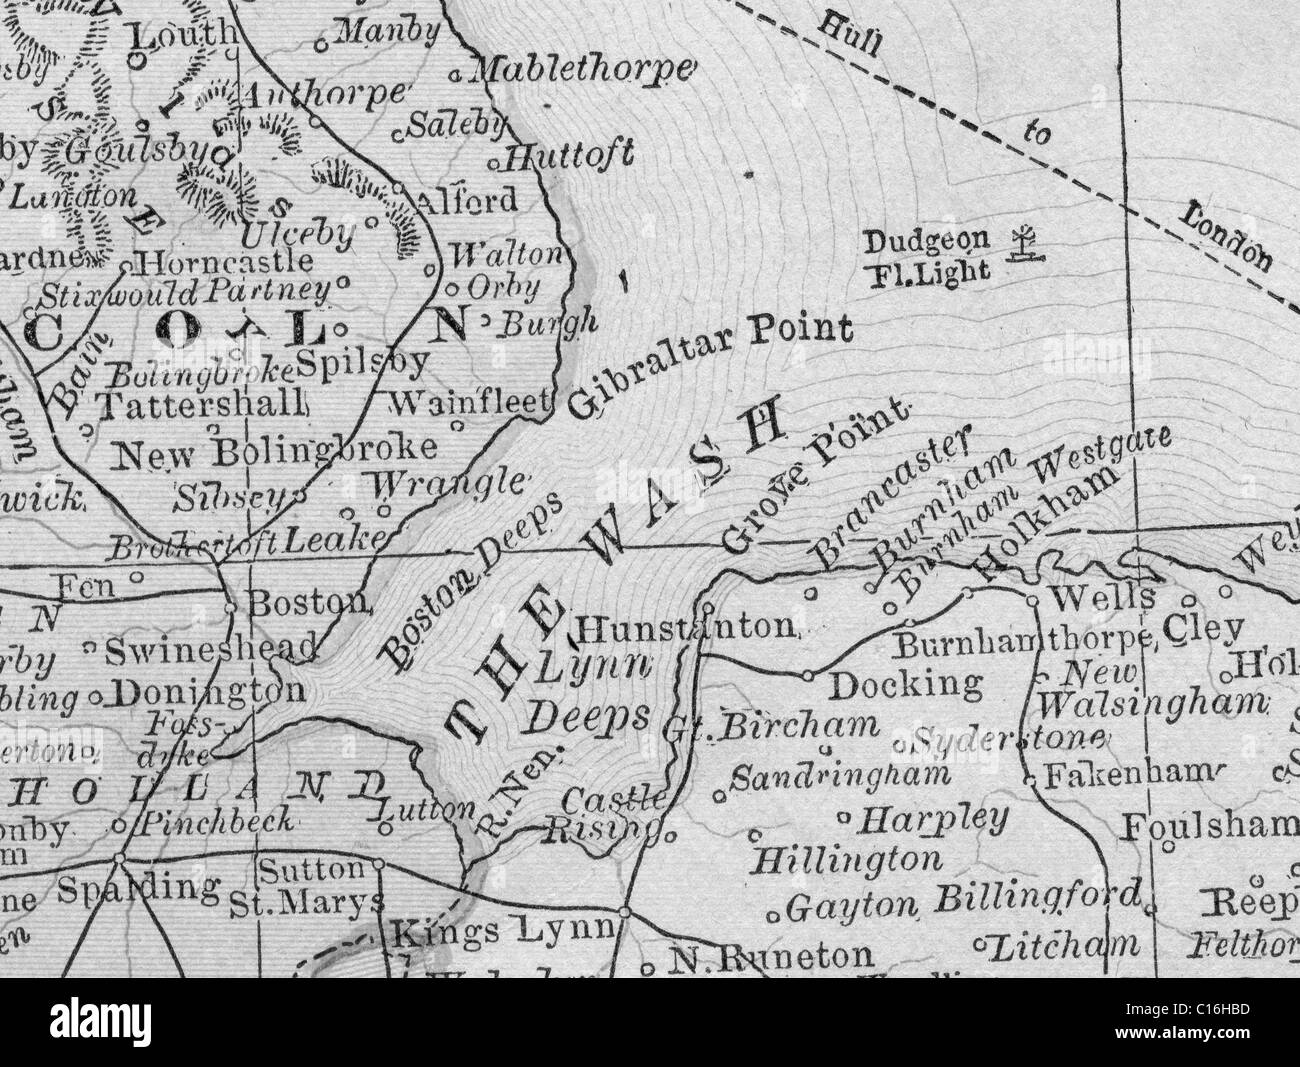 Old Map Of The Wash From Original Geography Textbook Stock - Wash map